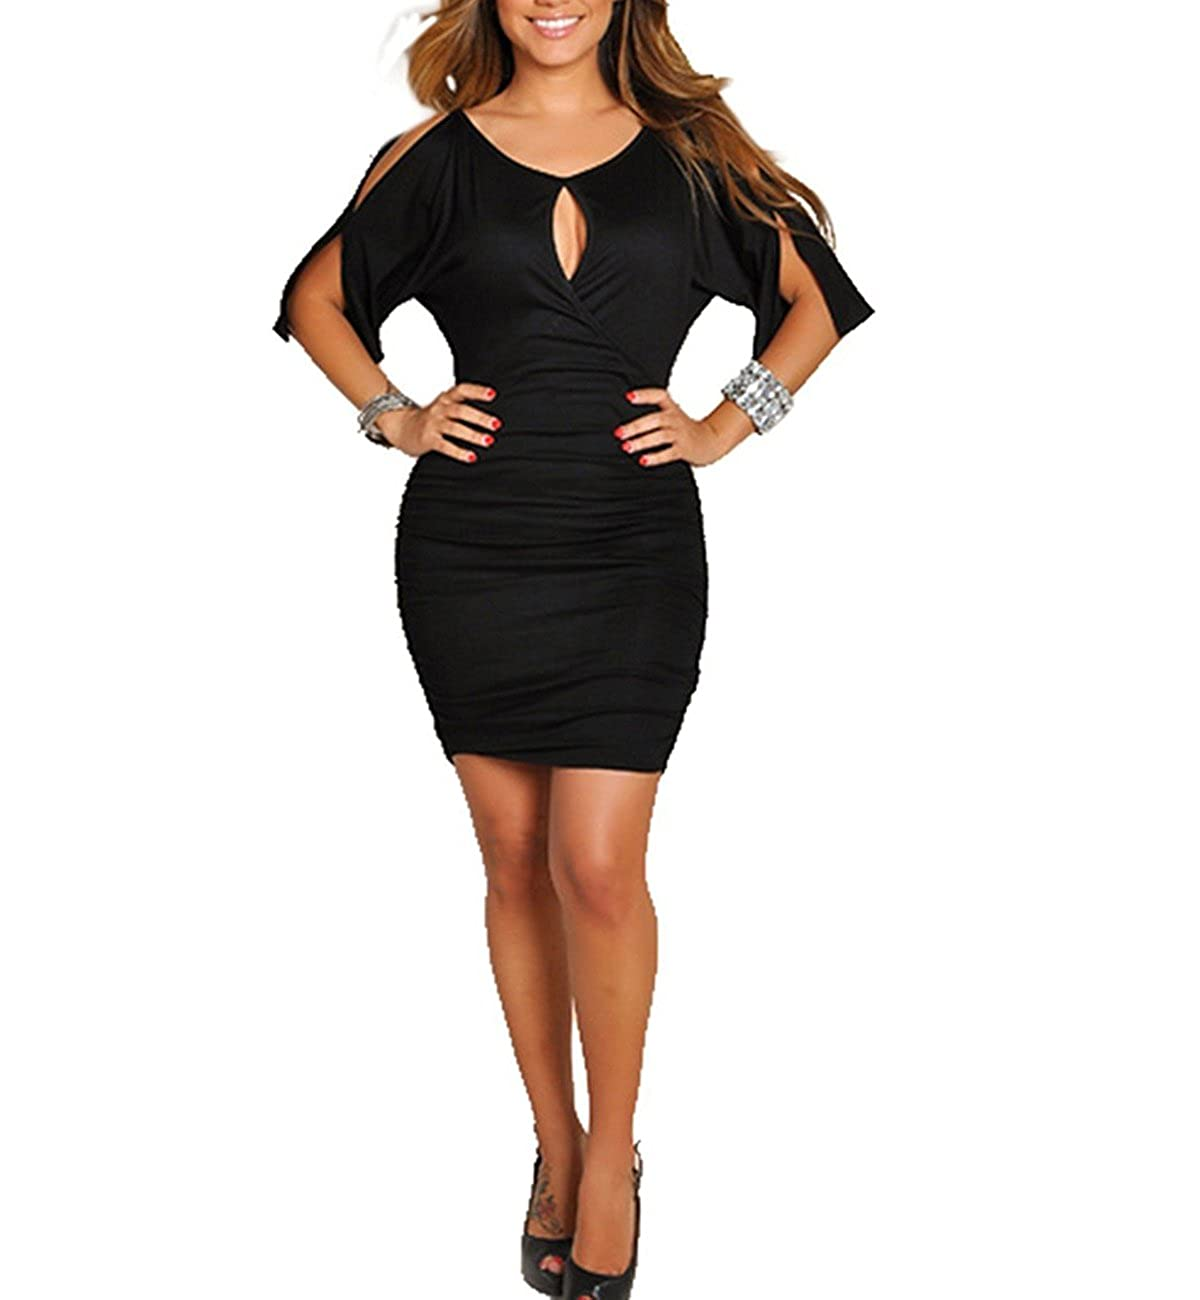 578eff41fa Top 10 wholesale Cut Out Wrap Bodycon Dress - Chinabrands.com